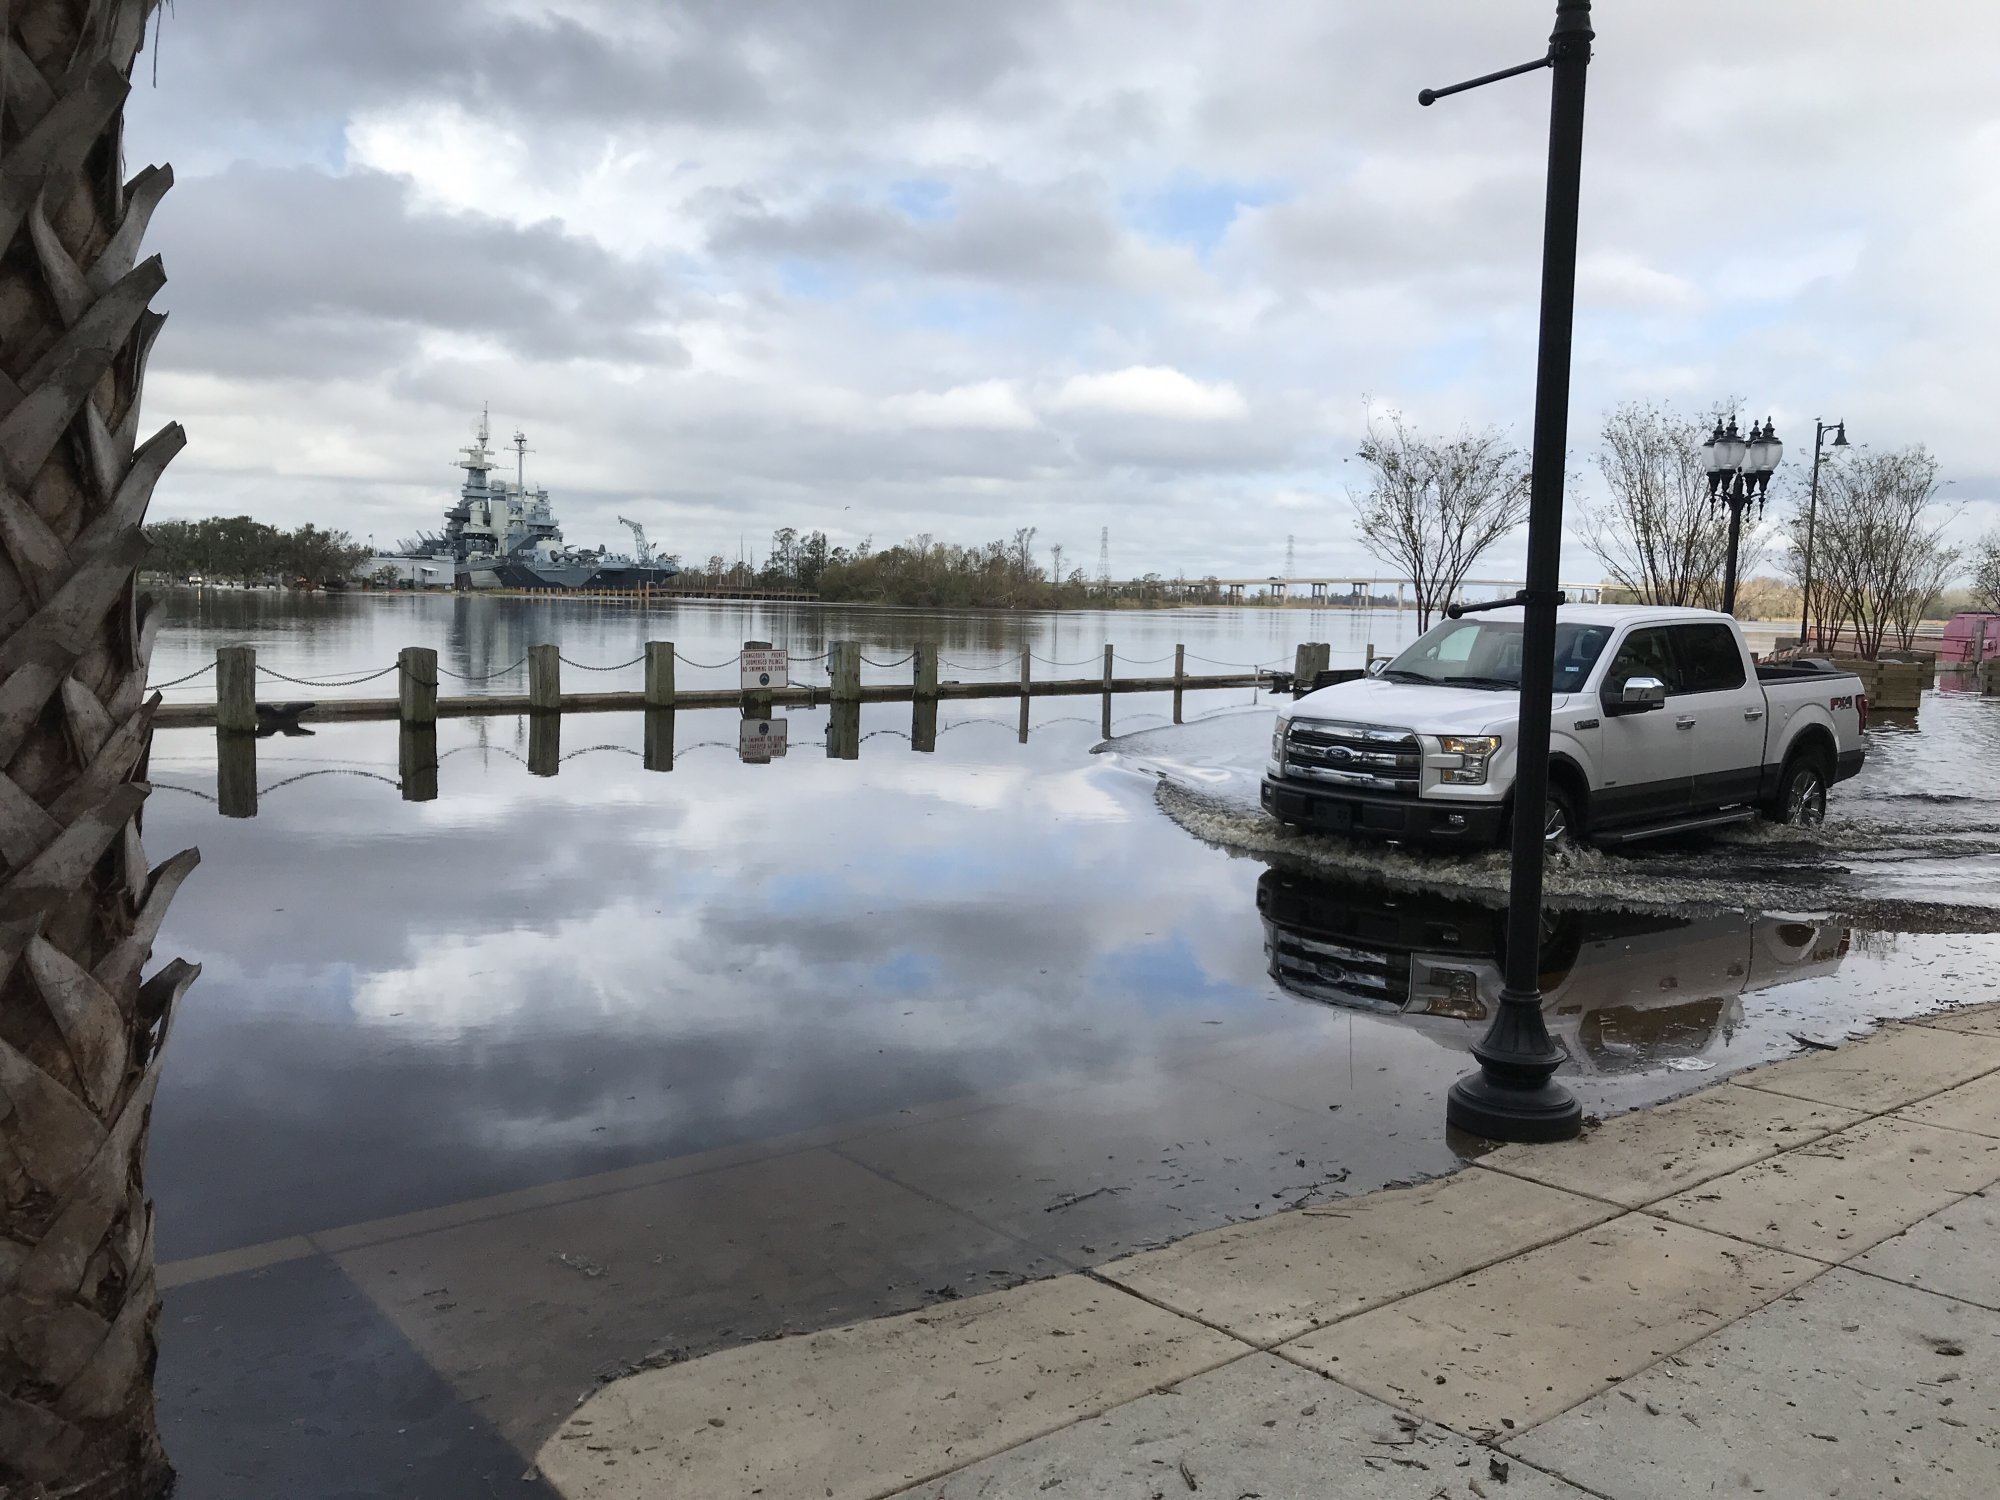 Significant coastal flooding occurred in downtown Wilmington for many days after Hurricane Florence. (Photo credit: Rick Neuherz/NWS)